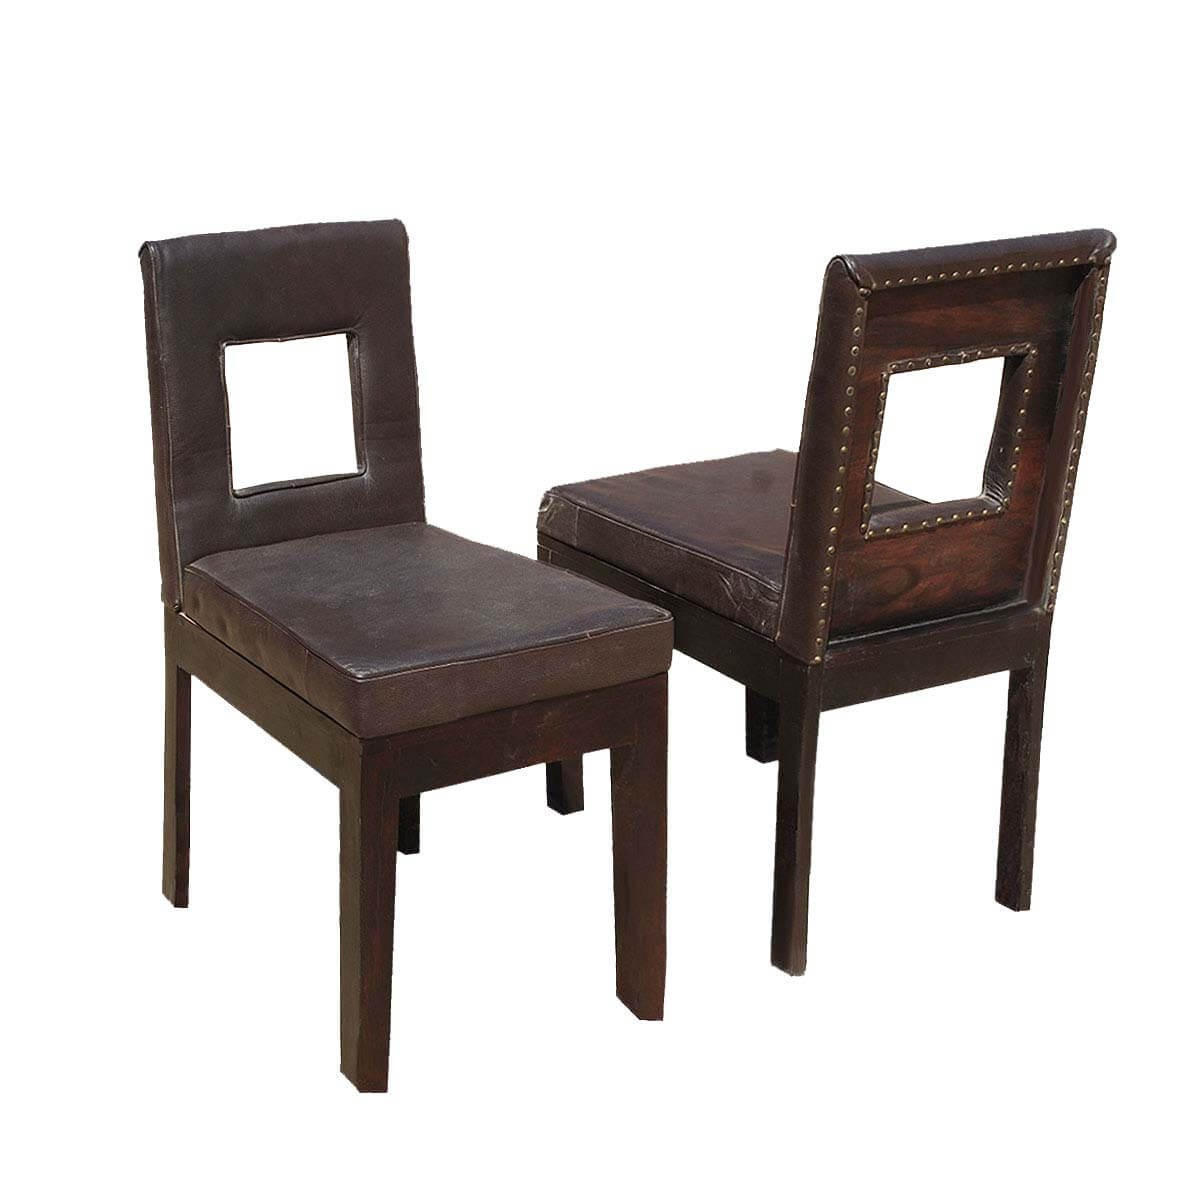 Rebel Solid Wood & Leather Window Back Chair Set of 2